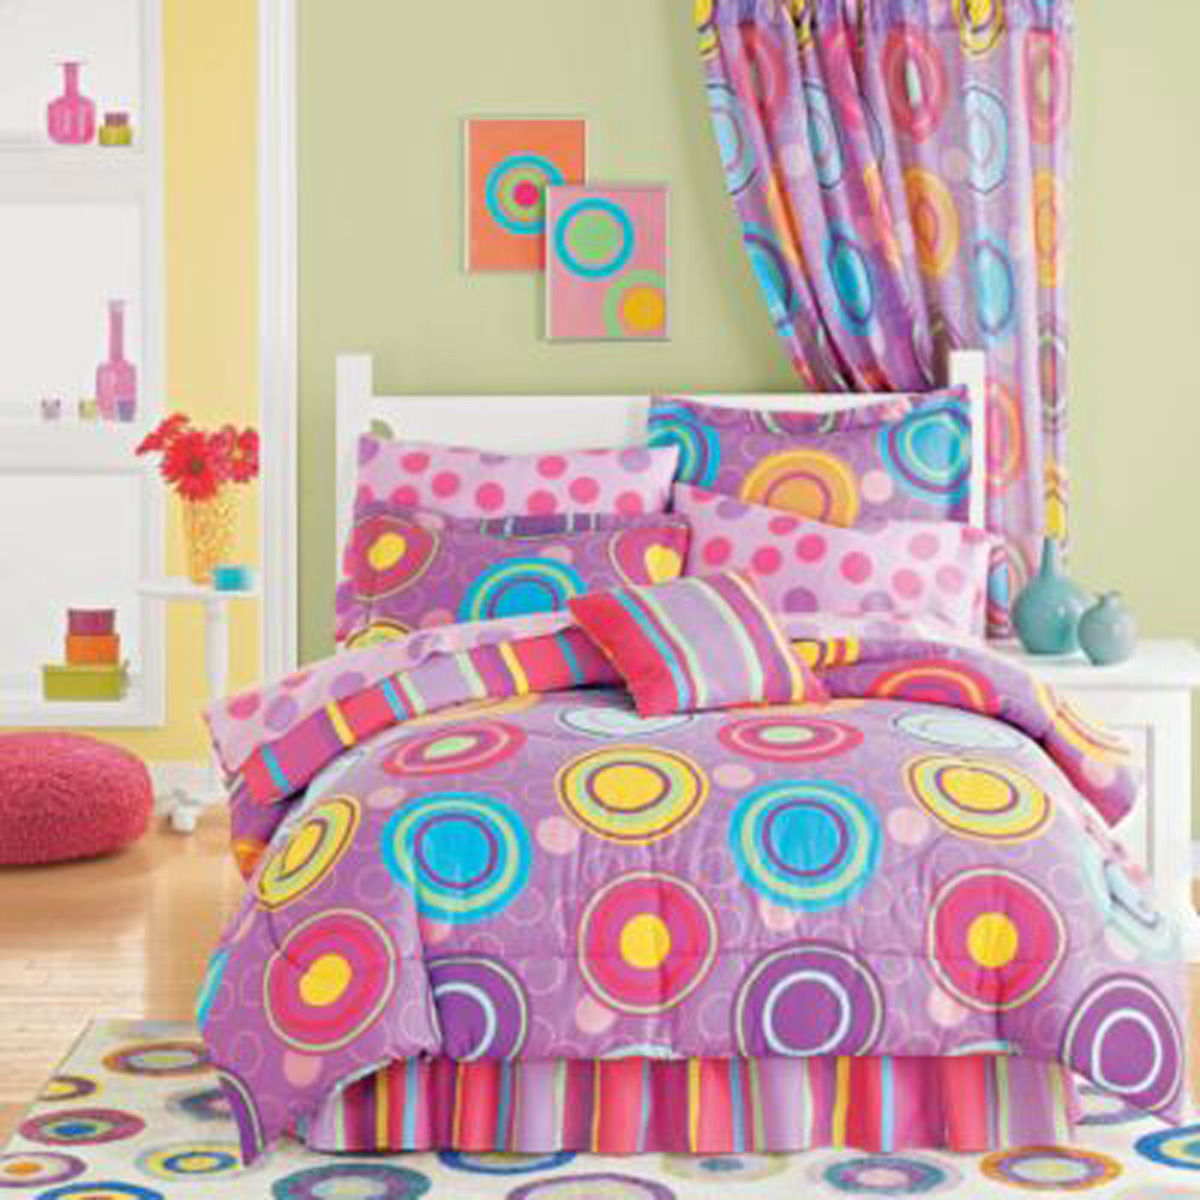 Kids bedroom decor one of 4 total images cheerful kids room decoration - Cheerful Kids Room Decorating Ideas